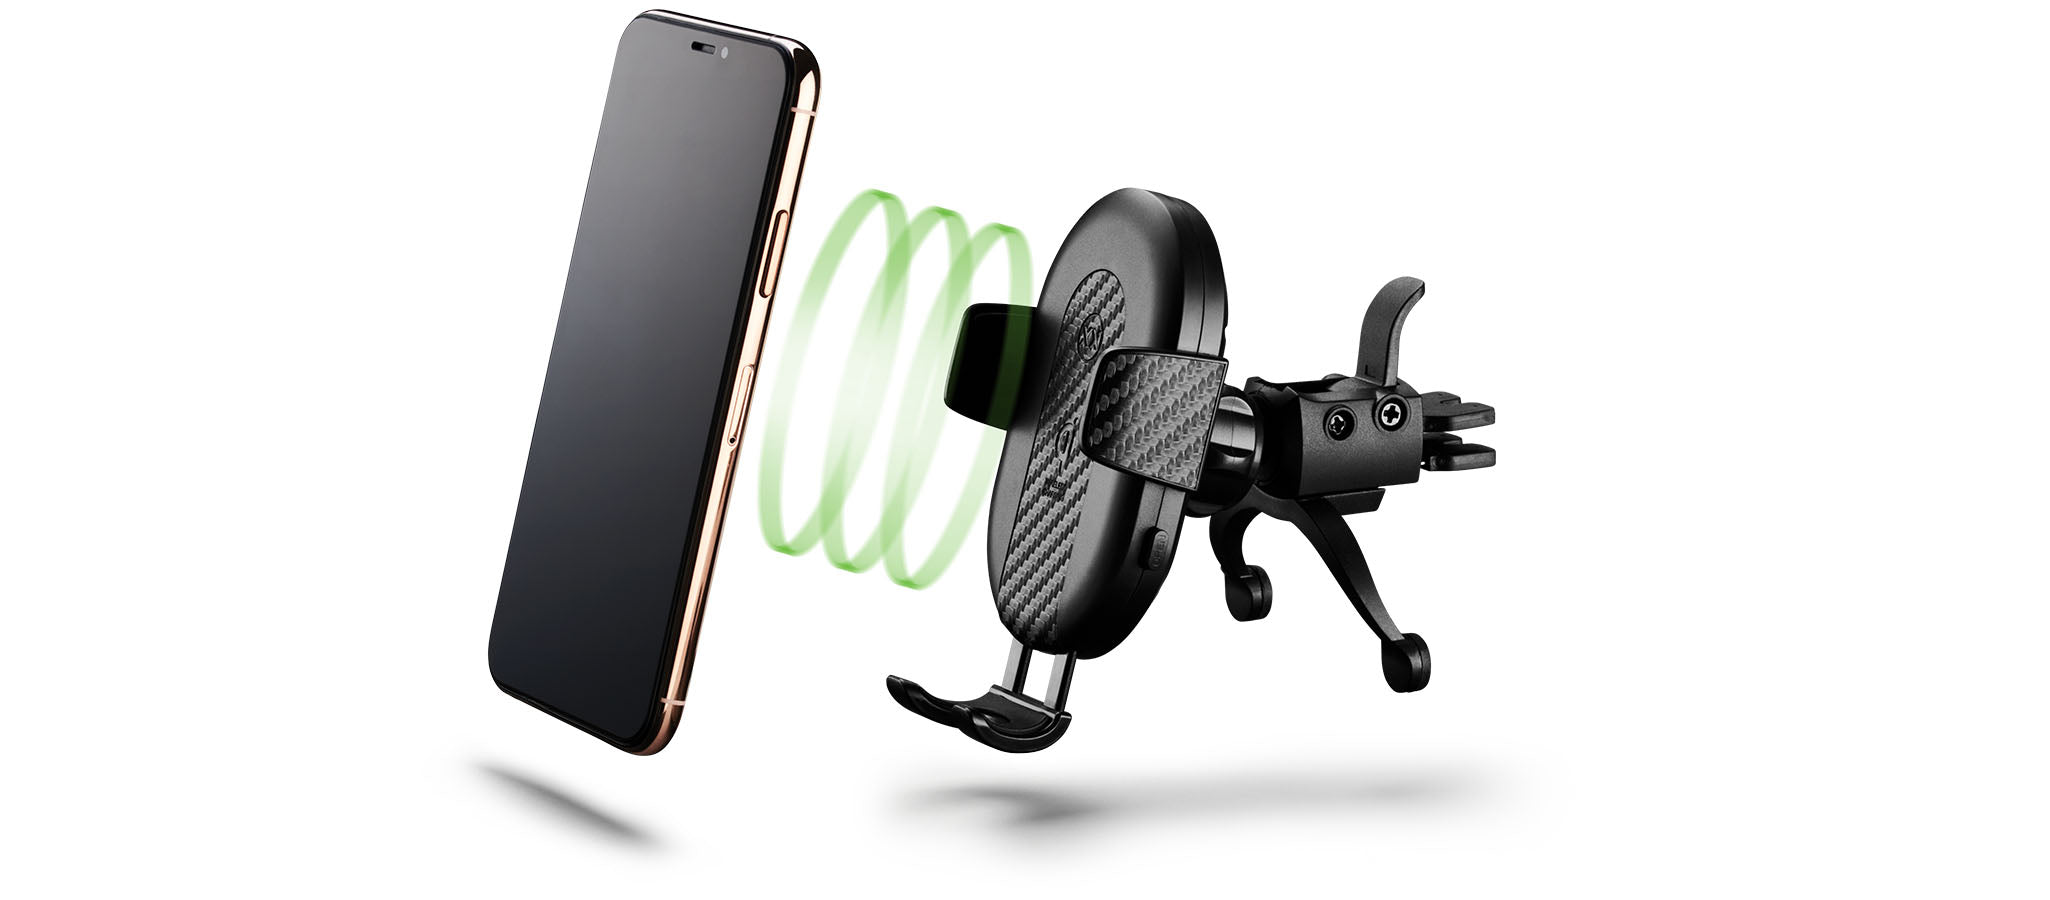 DashCharge wireless car mount for iPhone XS